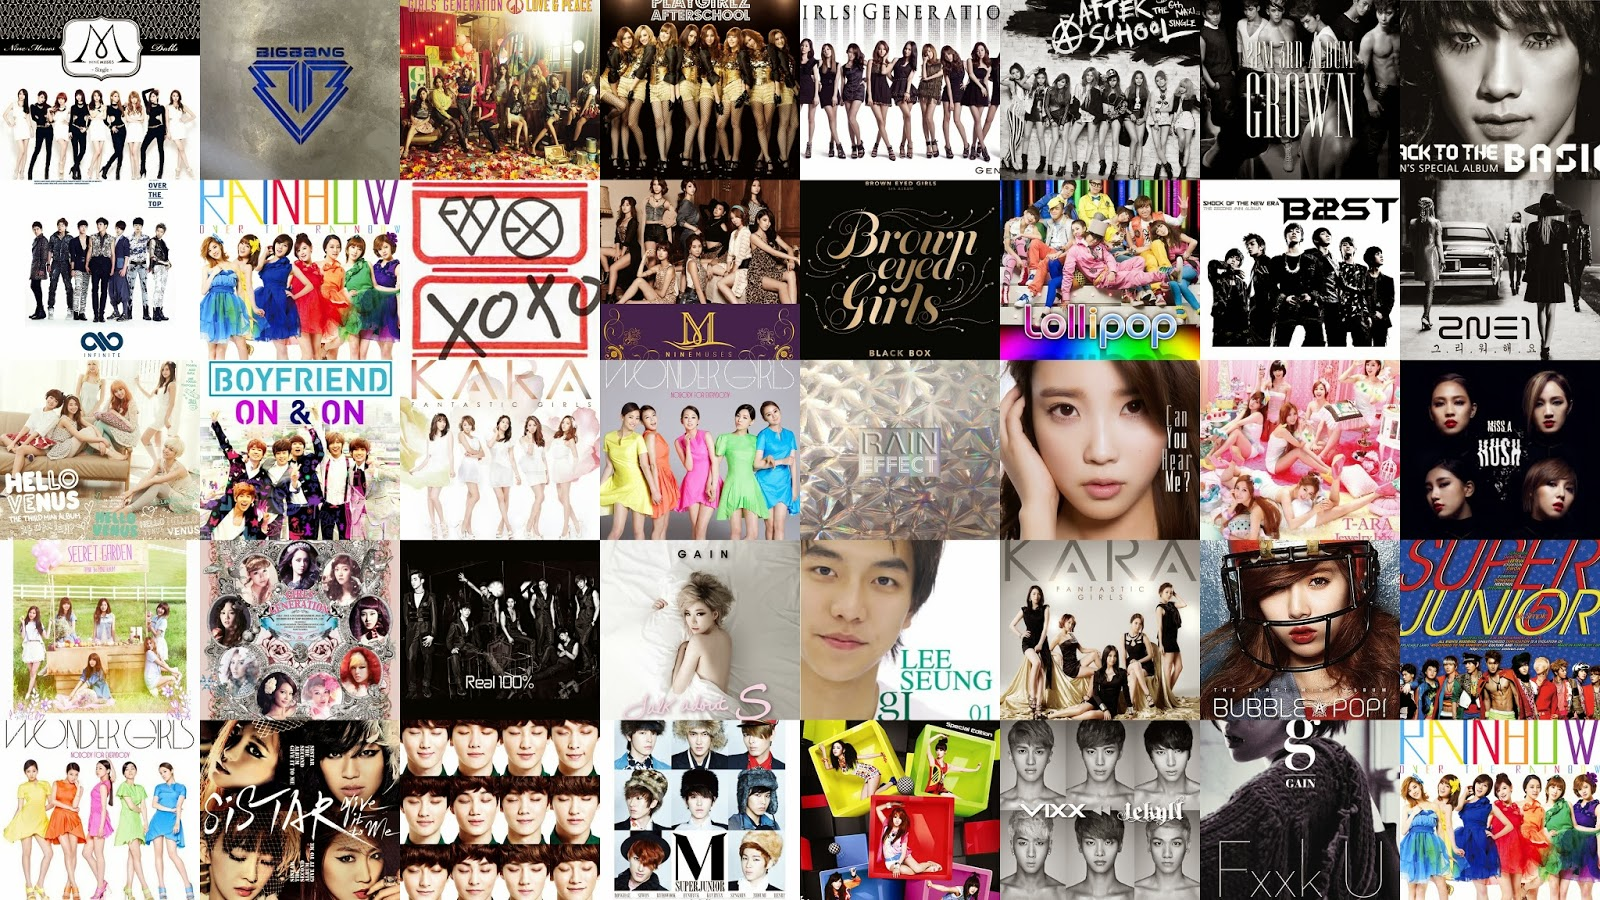 Shinee Dream Girl Wallpaper Quiz Can You Match These K Pop Album Covers To The